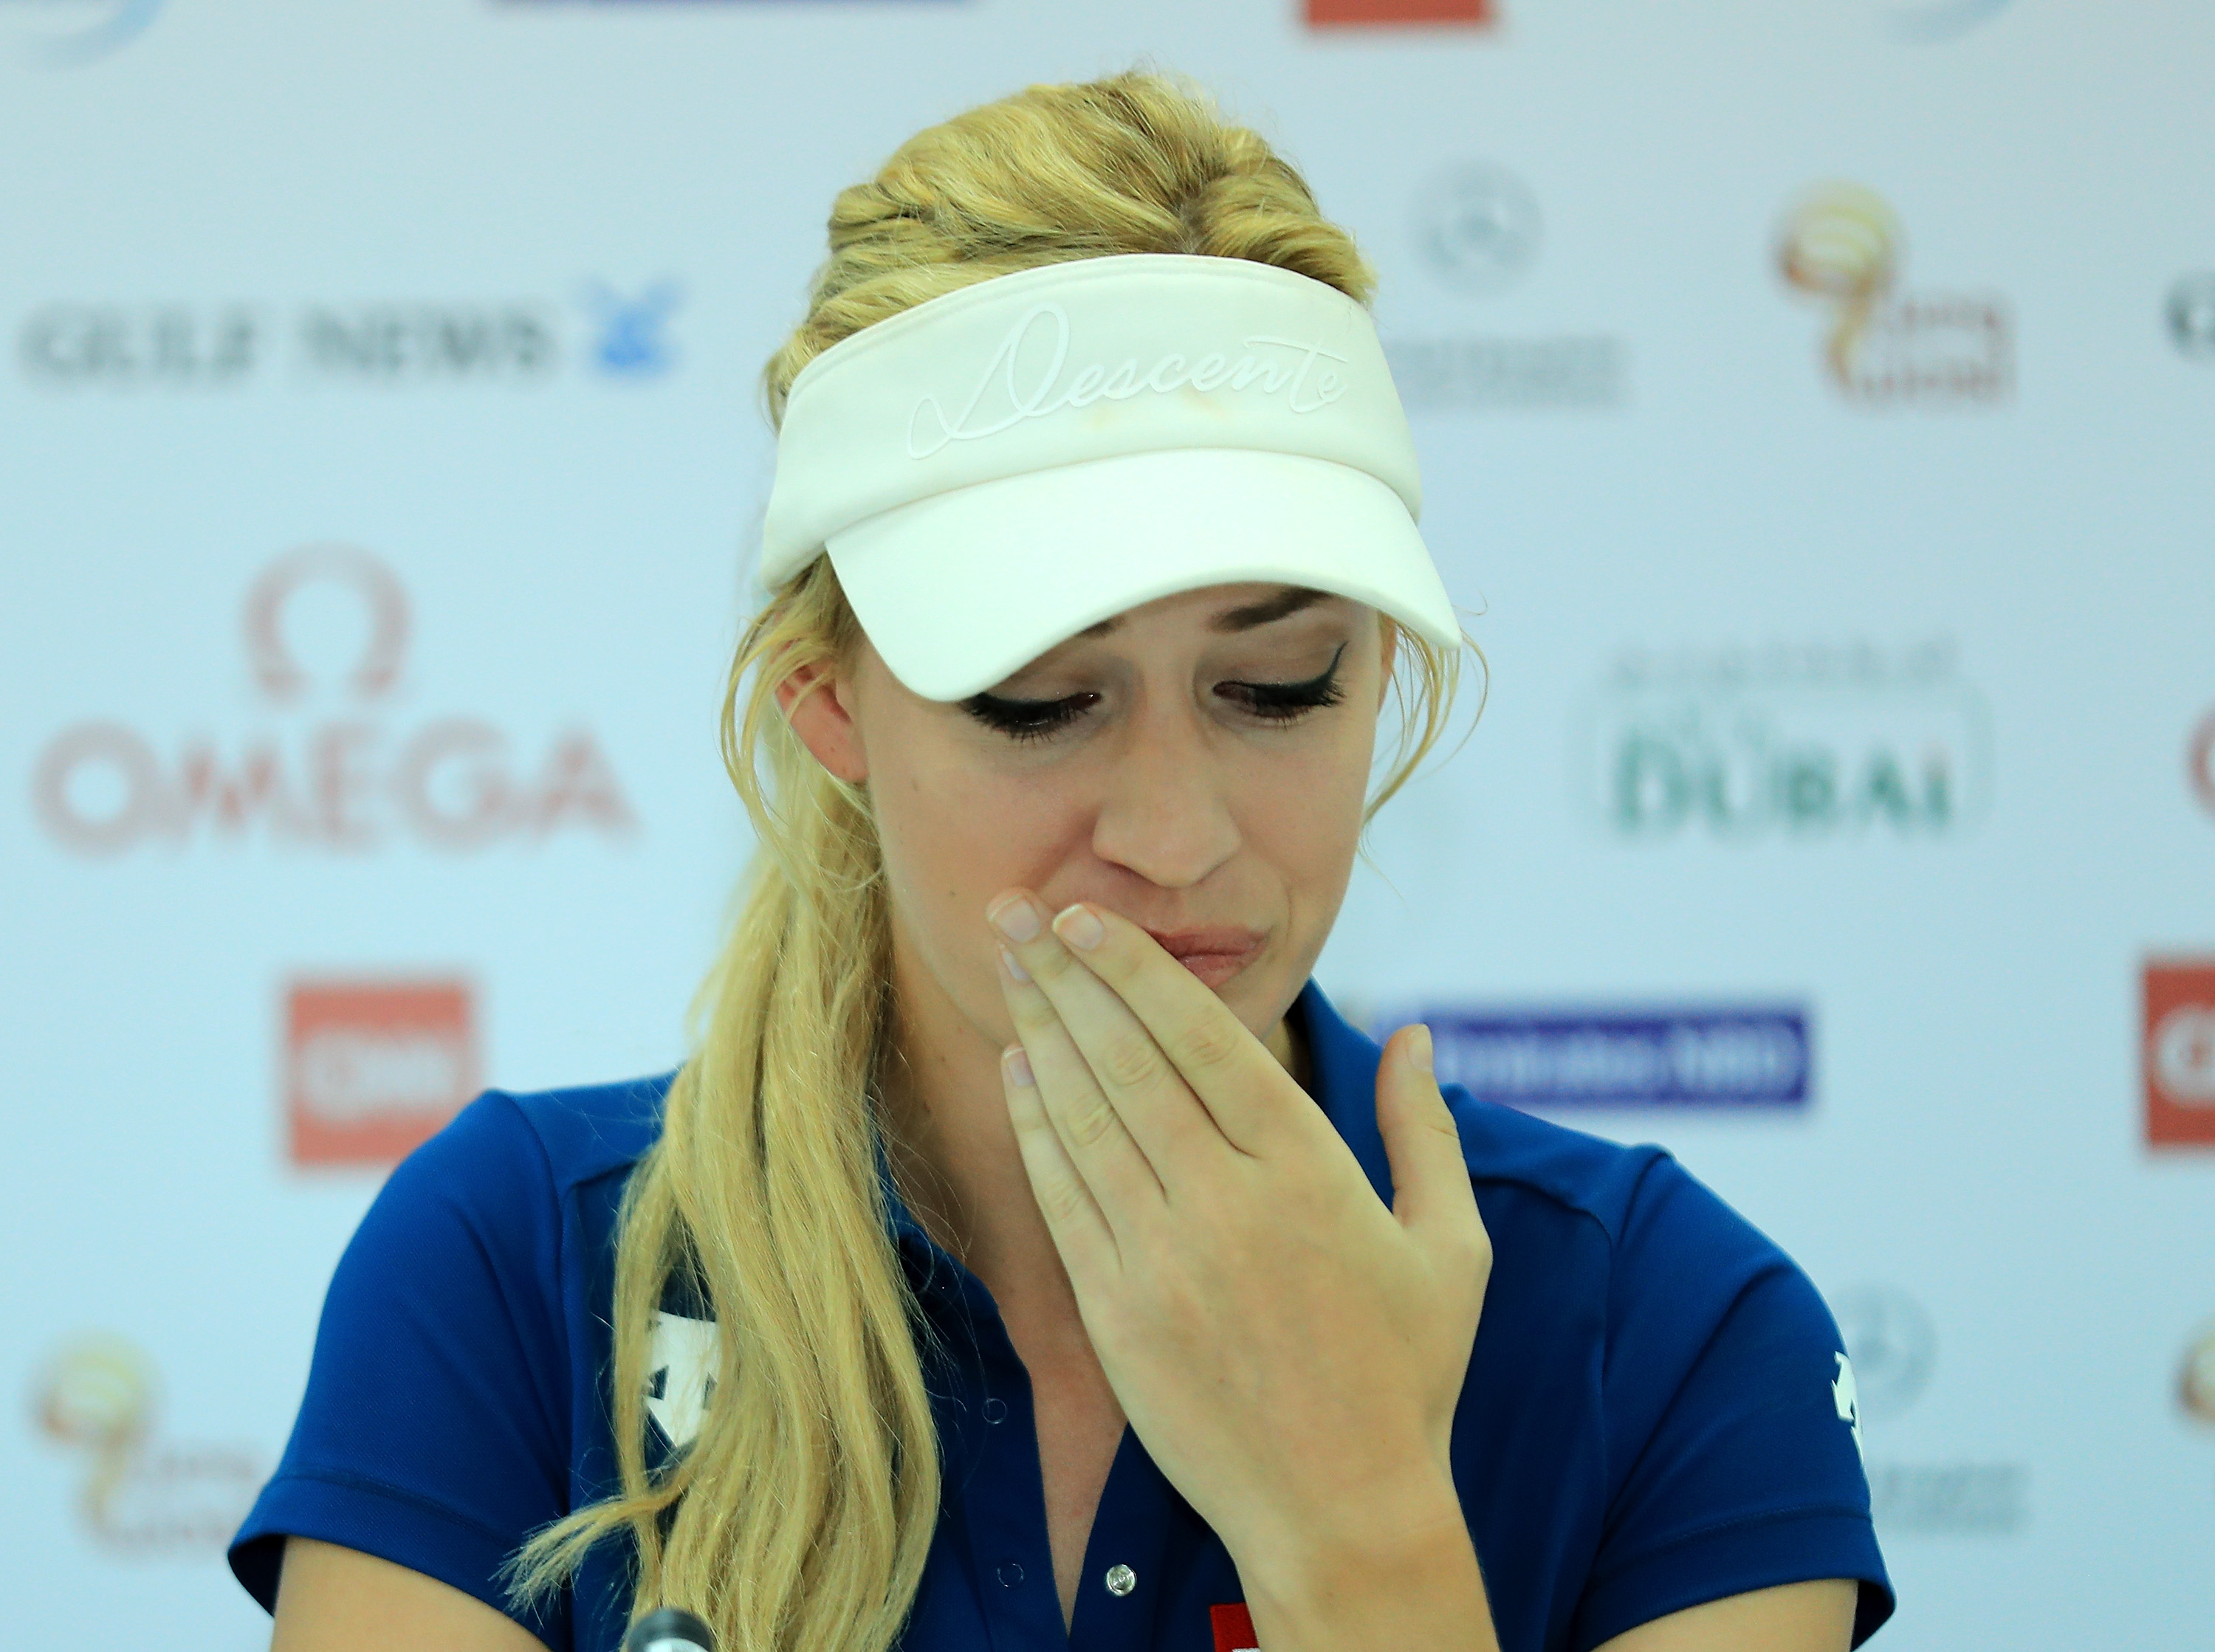 At the 2016 Omega Dubai Ladies Masters, Spiranac revealed that the controversy surrounding her career has taken a toll.